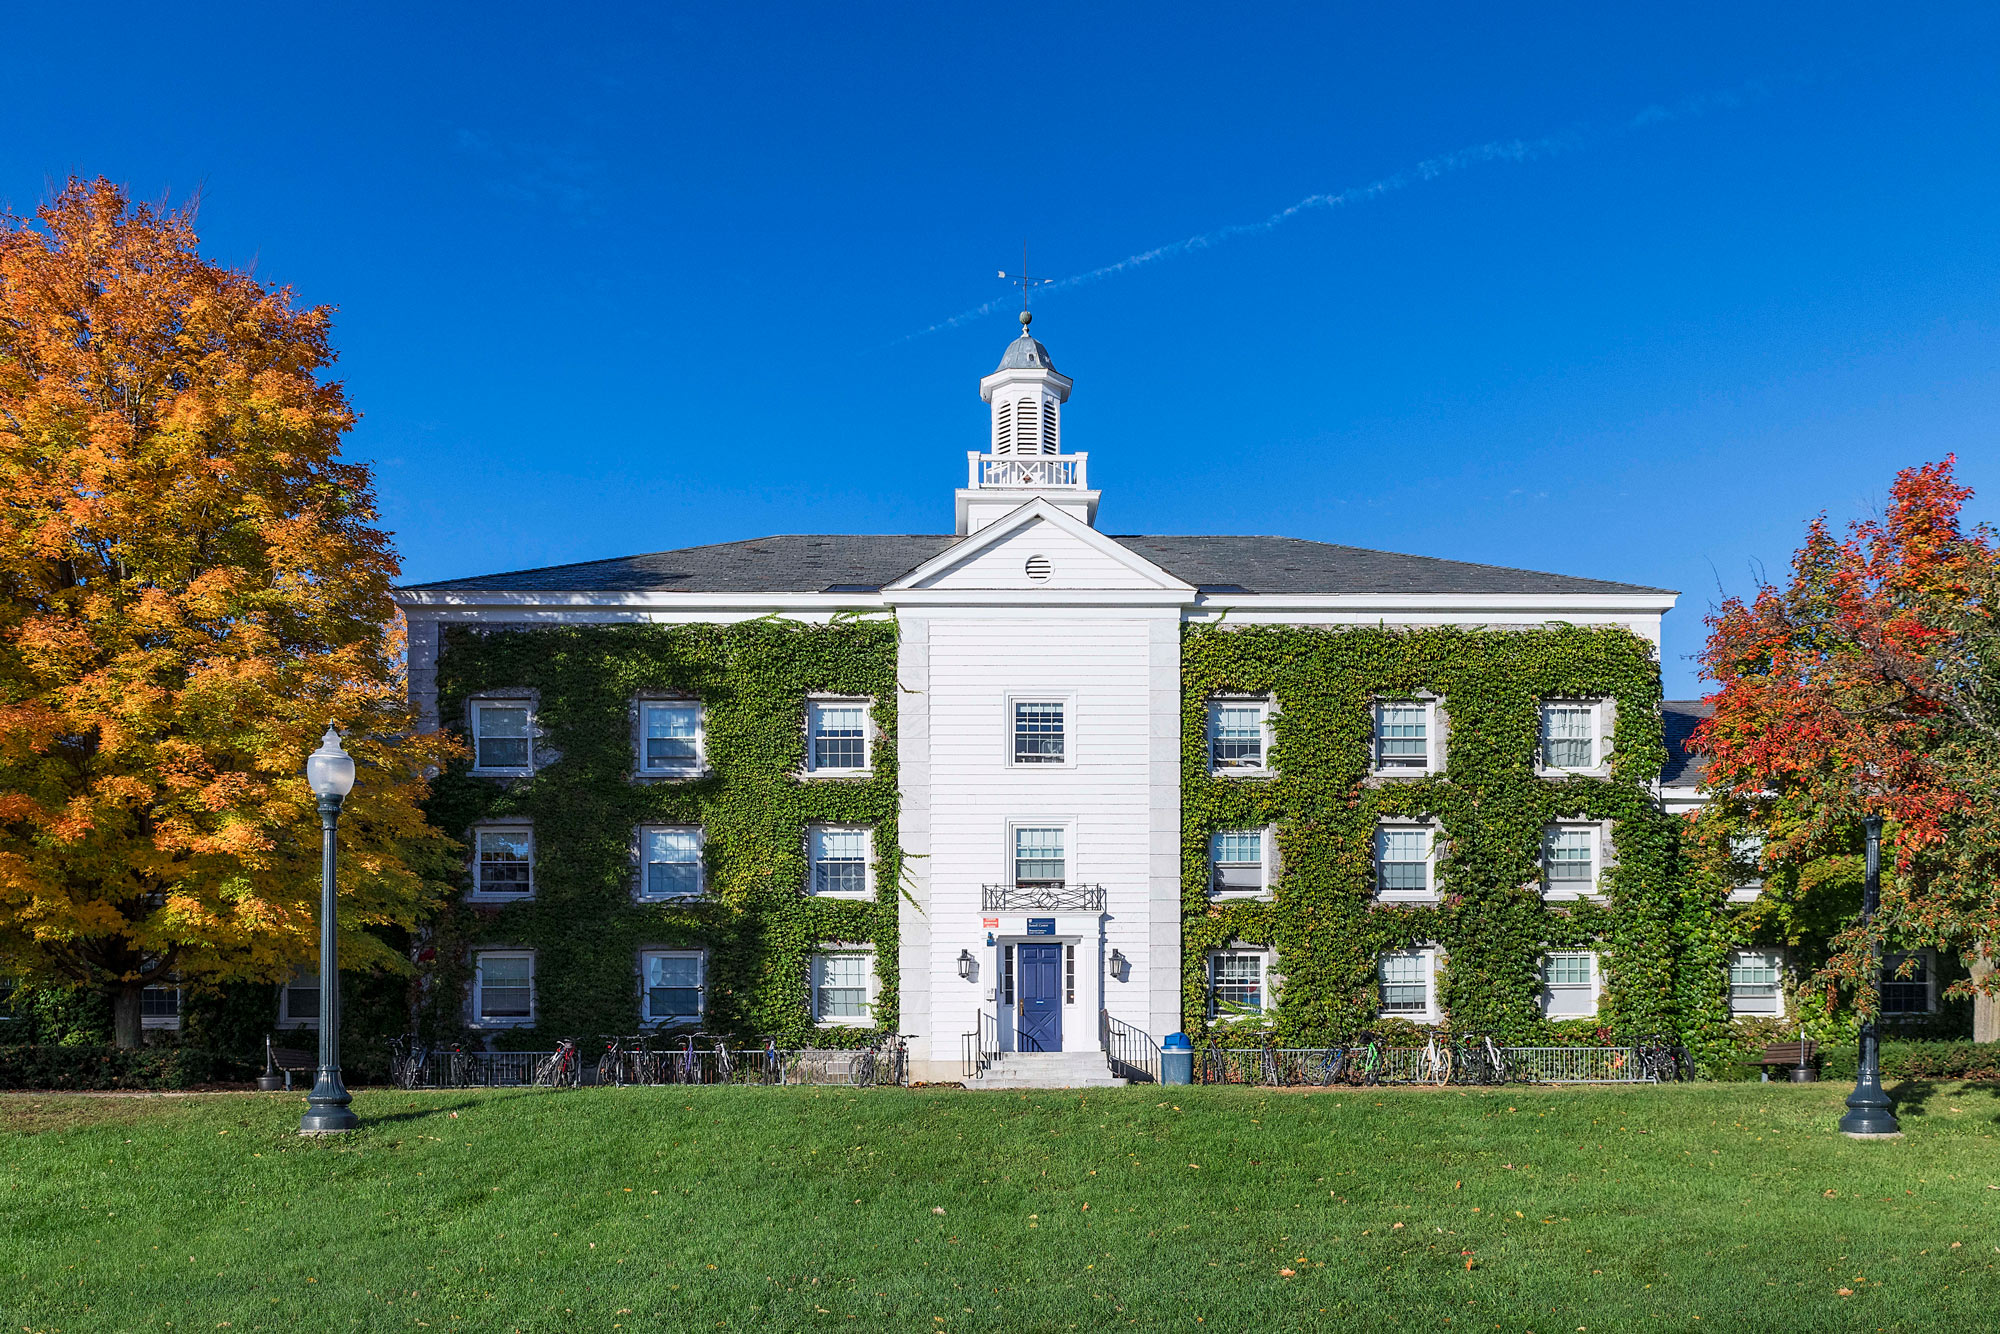 Battell Hall stands on the Middlebury College campus in Middlebury, Vermont, on October 14, 2018.